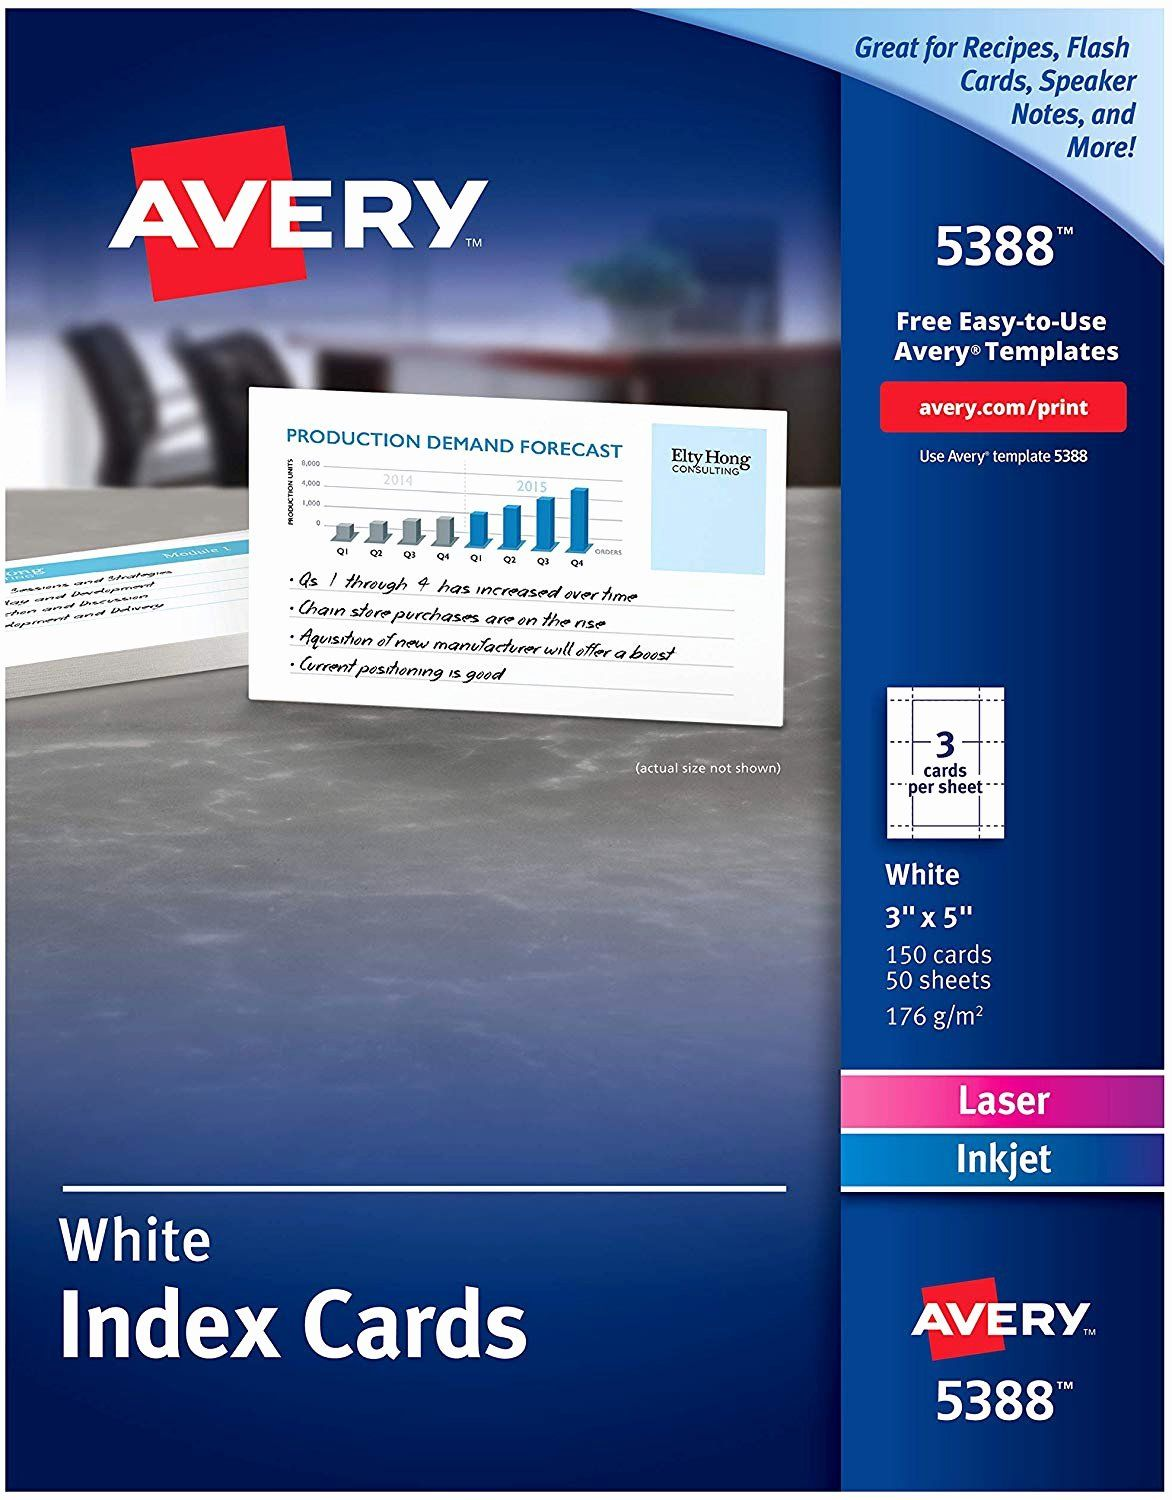 Avery 4x6 Postcard Template Luxury Avery Index Cards For Laser And Inkjet Printers Great For Flash Cards Recipe Card Printer Recipe Cards Template Index Cards